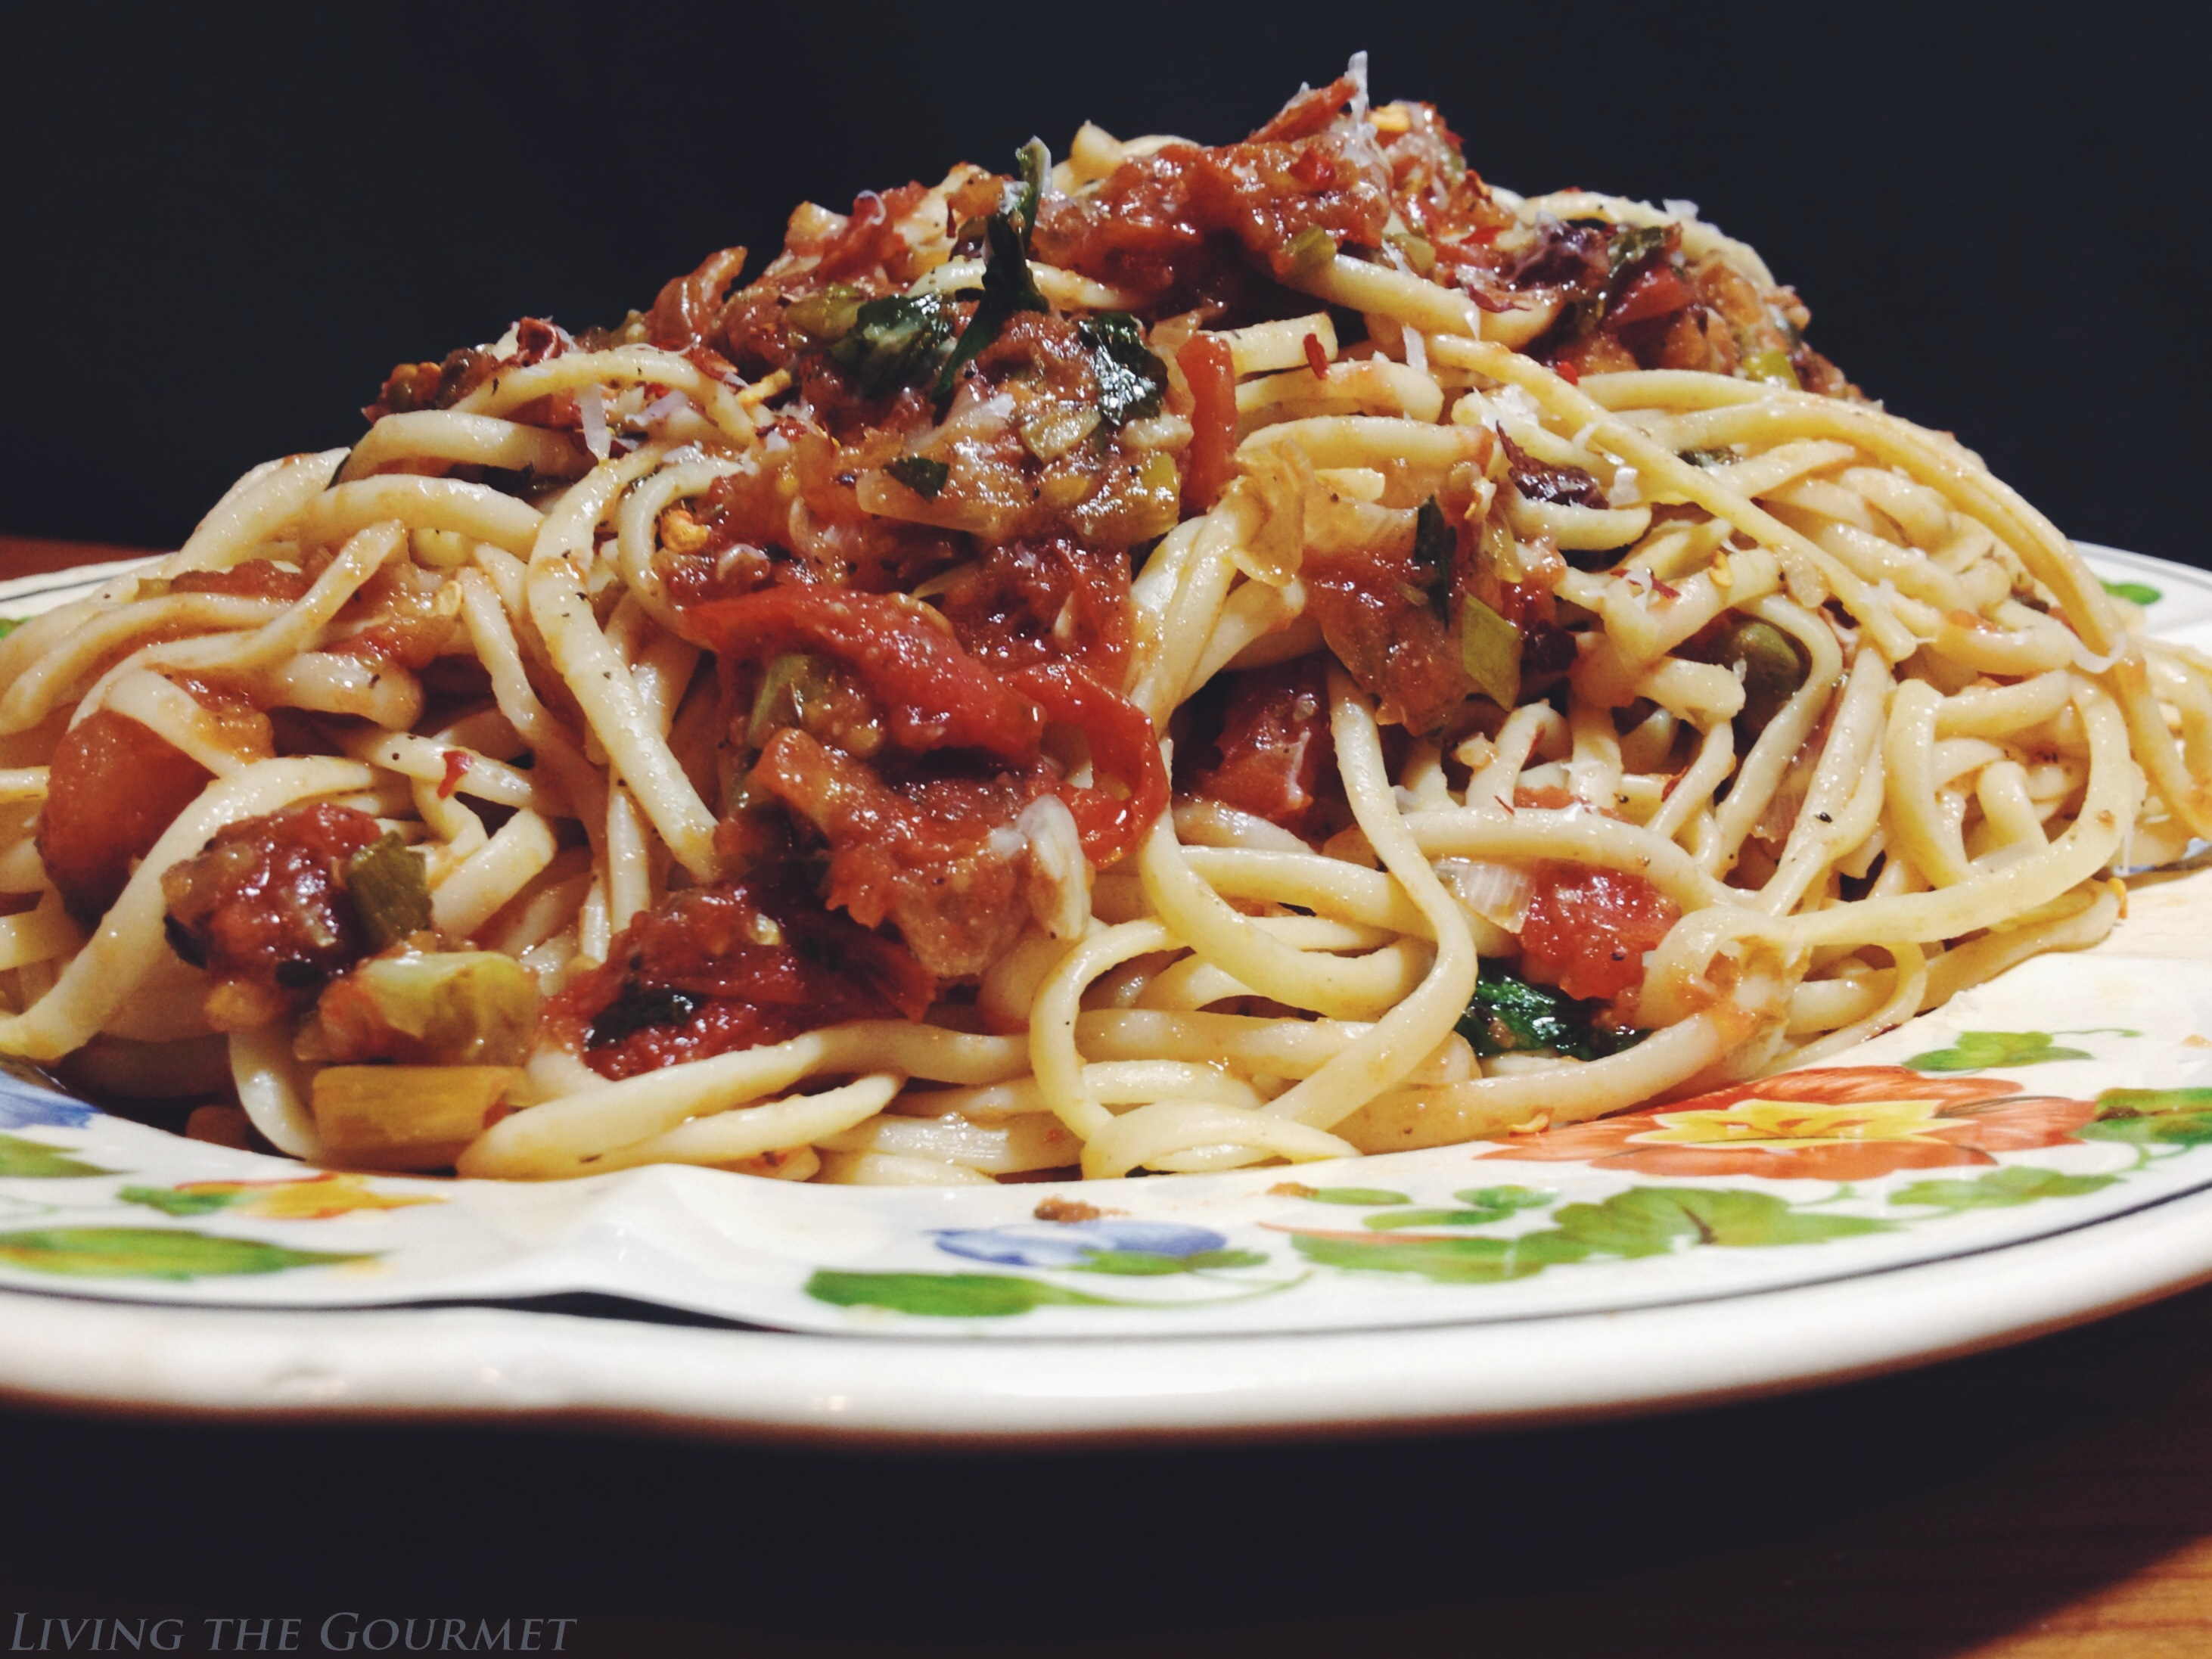 Living the Gourmet: Fresh Tomato & Anchovy Sauce with Spaghetti